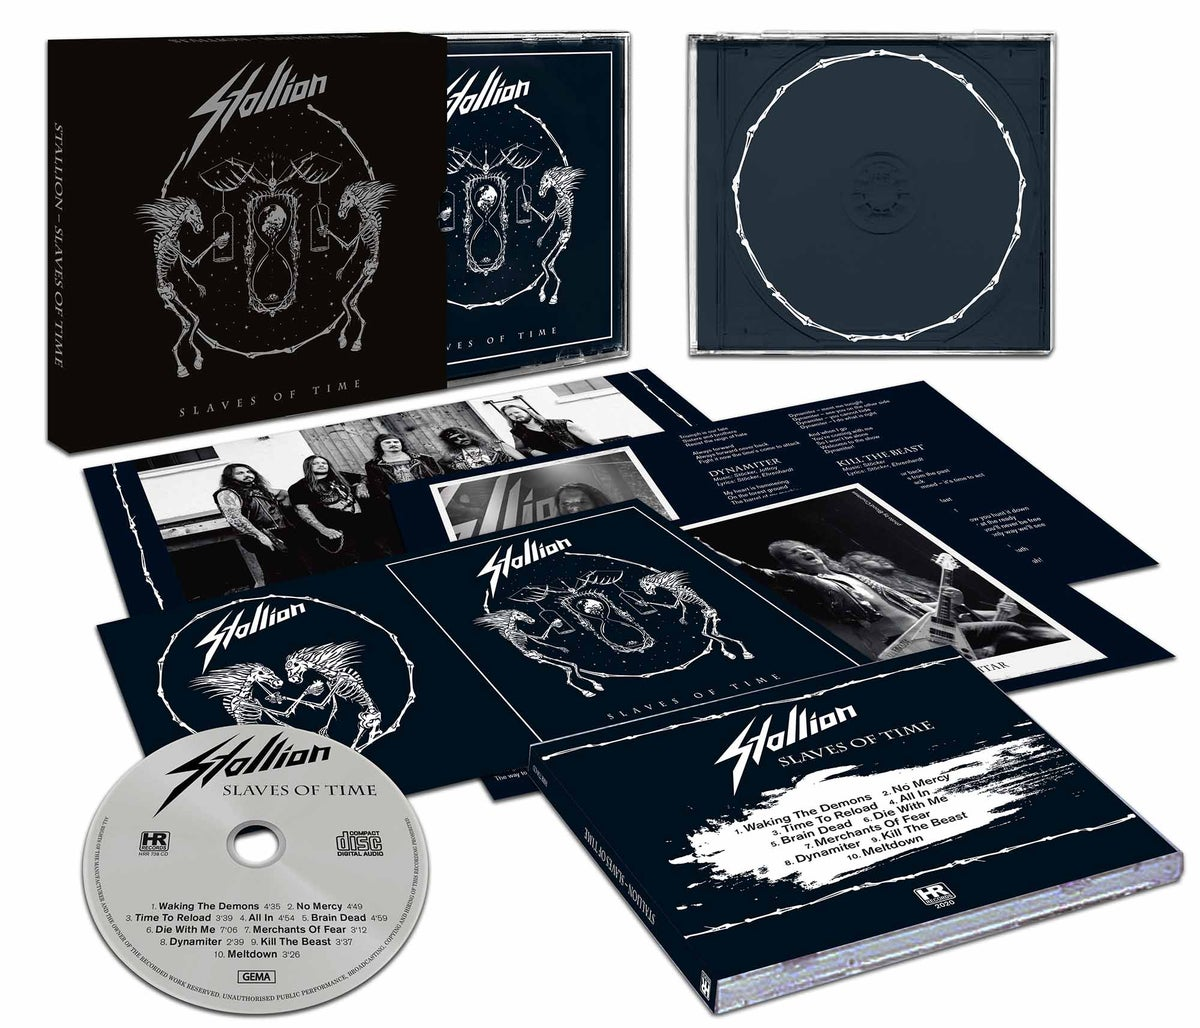 Slaves of Time - Slipcase CD (Regular and Corona Supporter - Price)